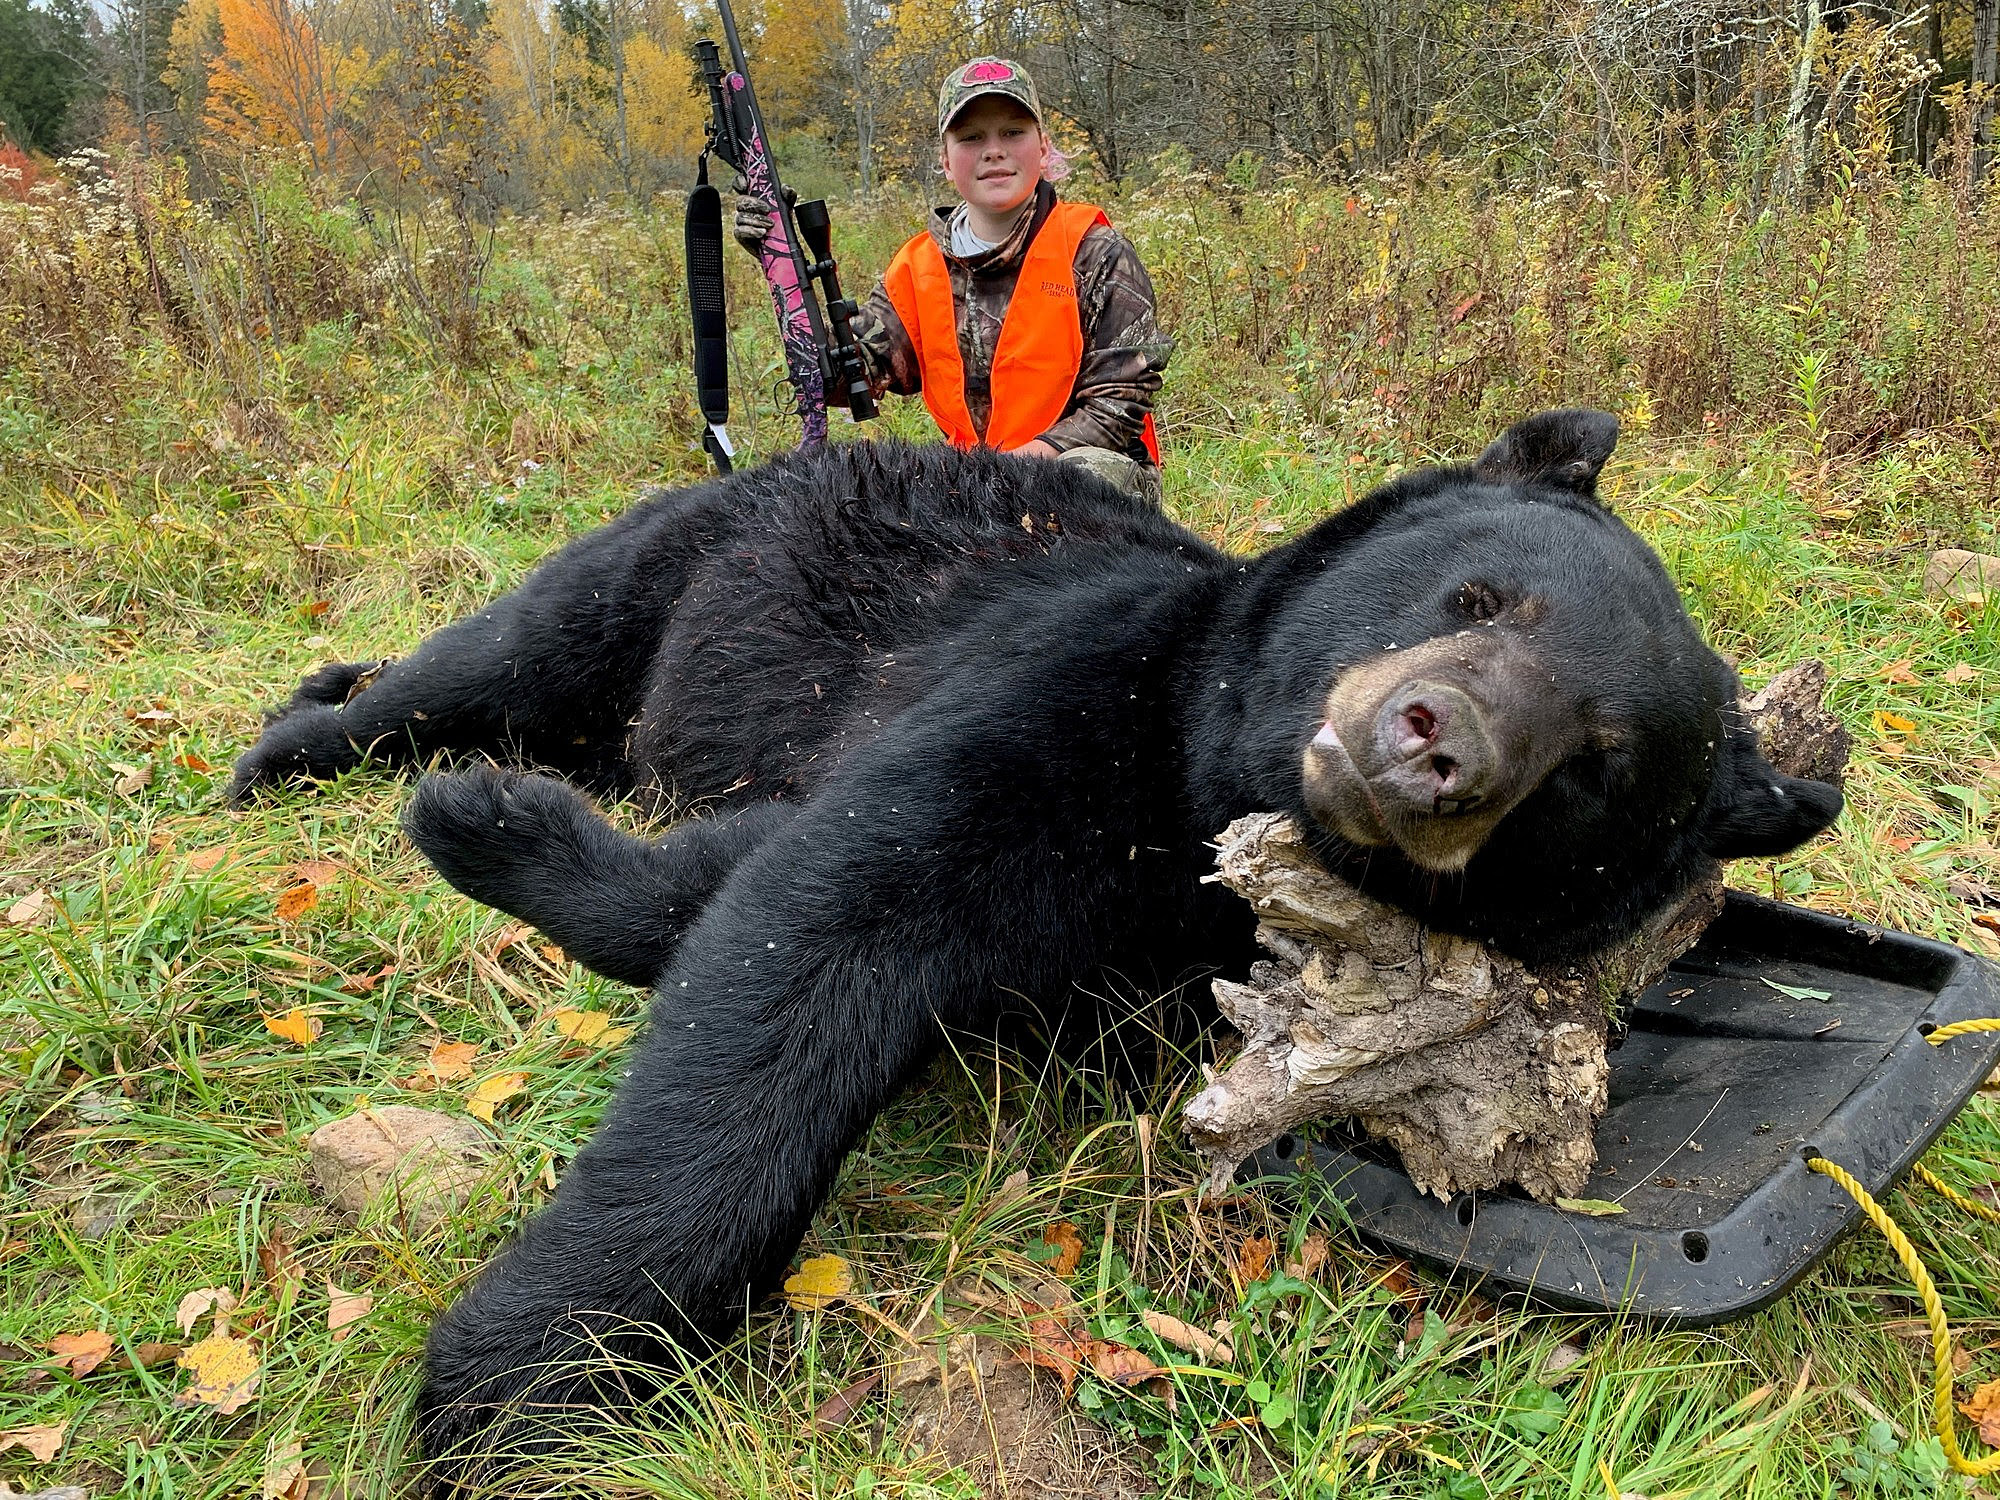 New York Teen Takes Down Bear In Youth Big Game Hunt